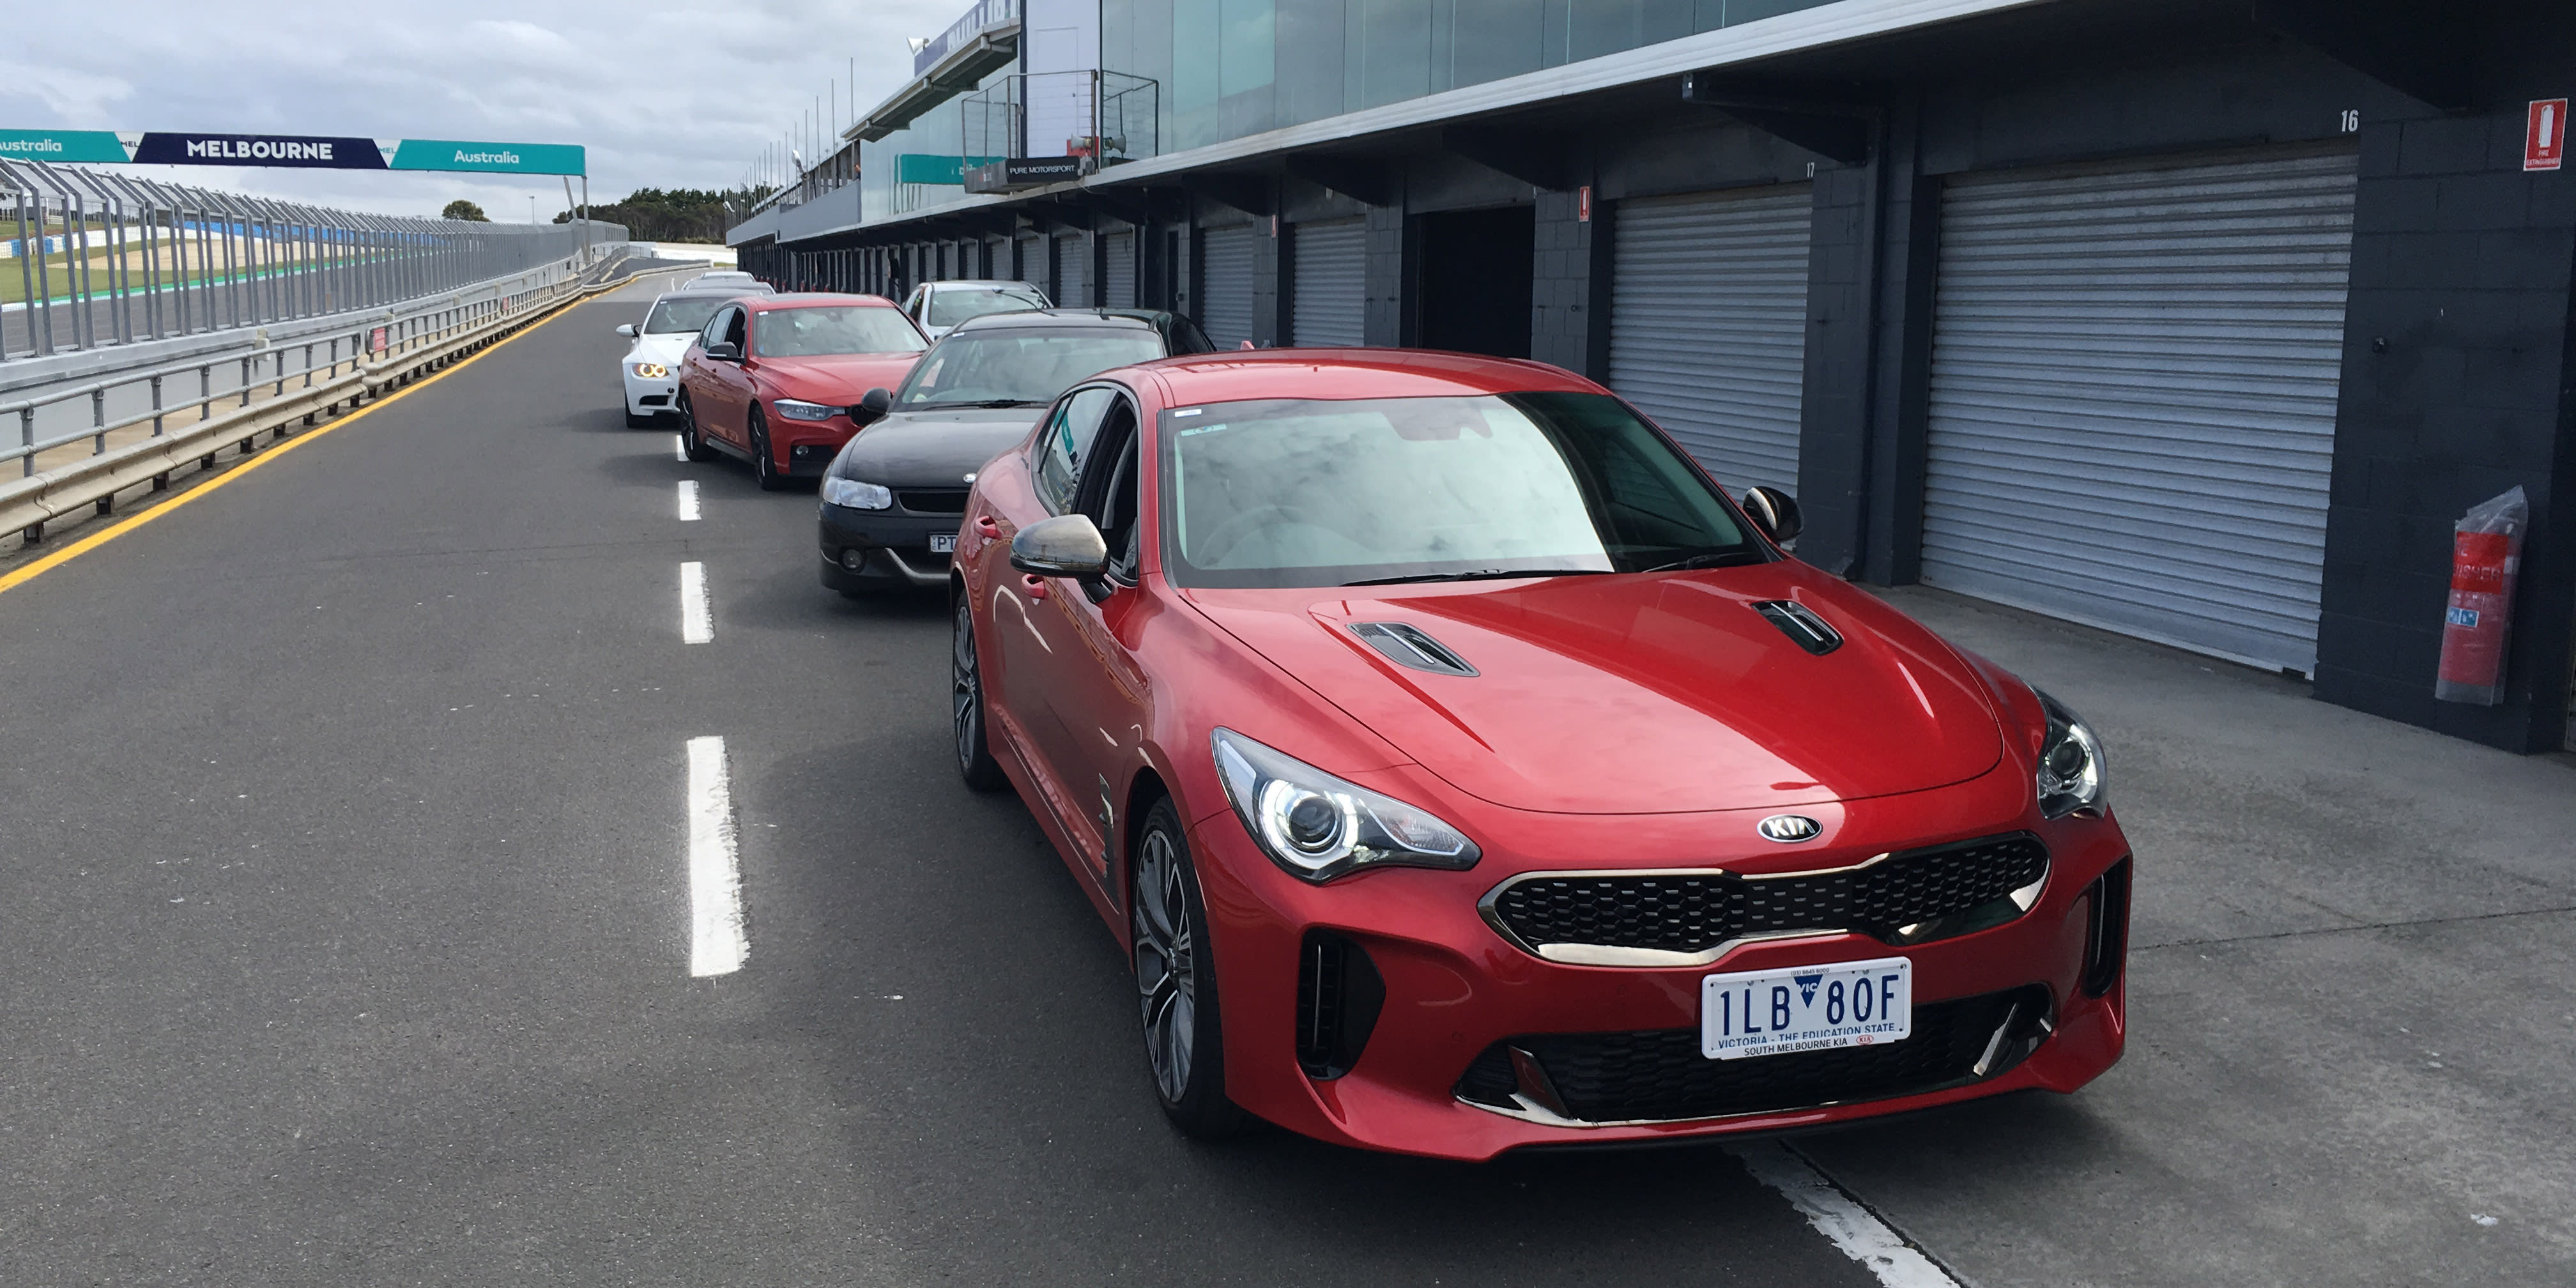 kia stinger cars we own introduction 7